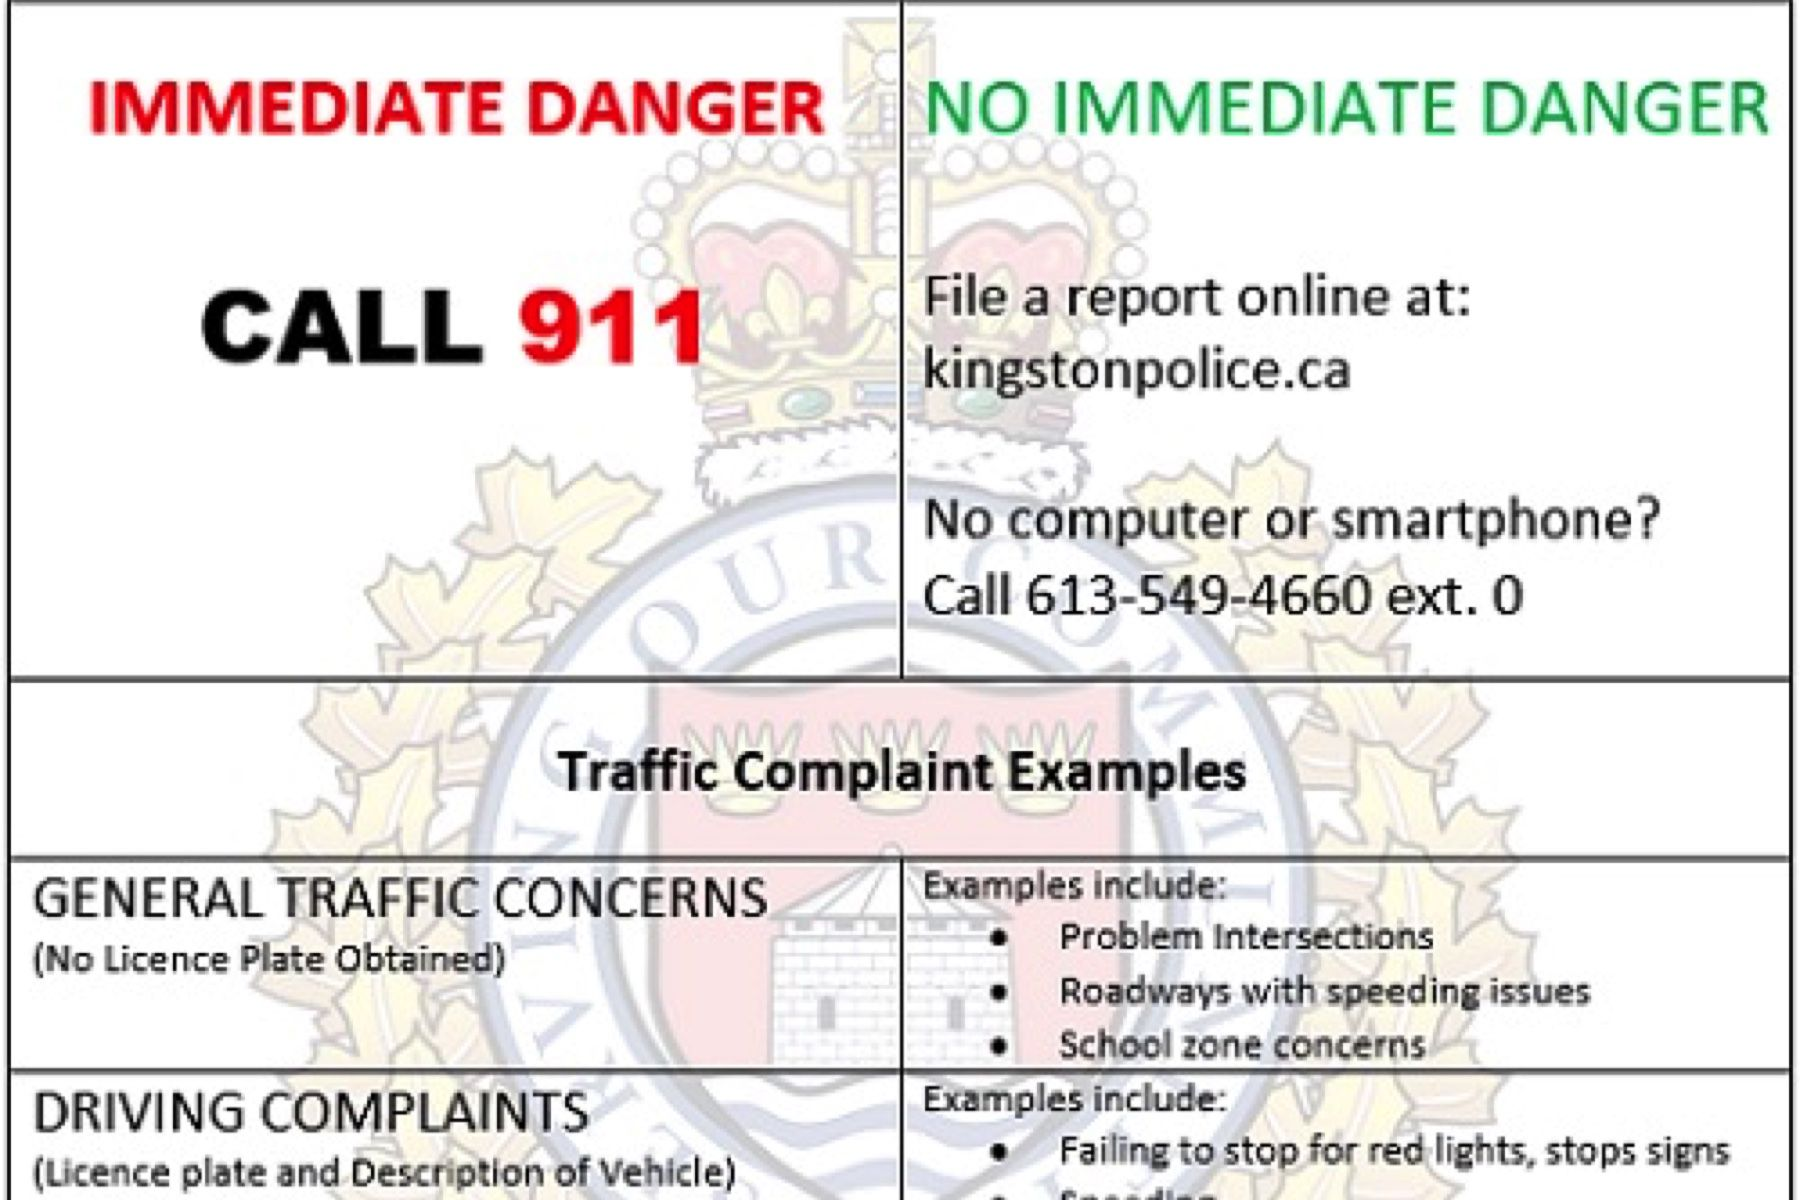 Kingston police traffic complaint letter